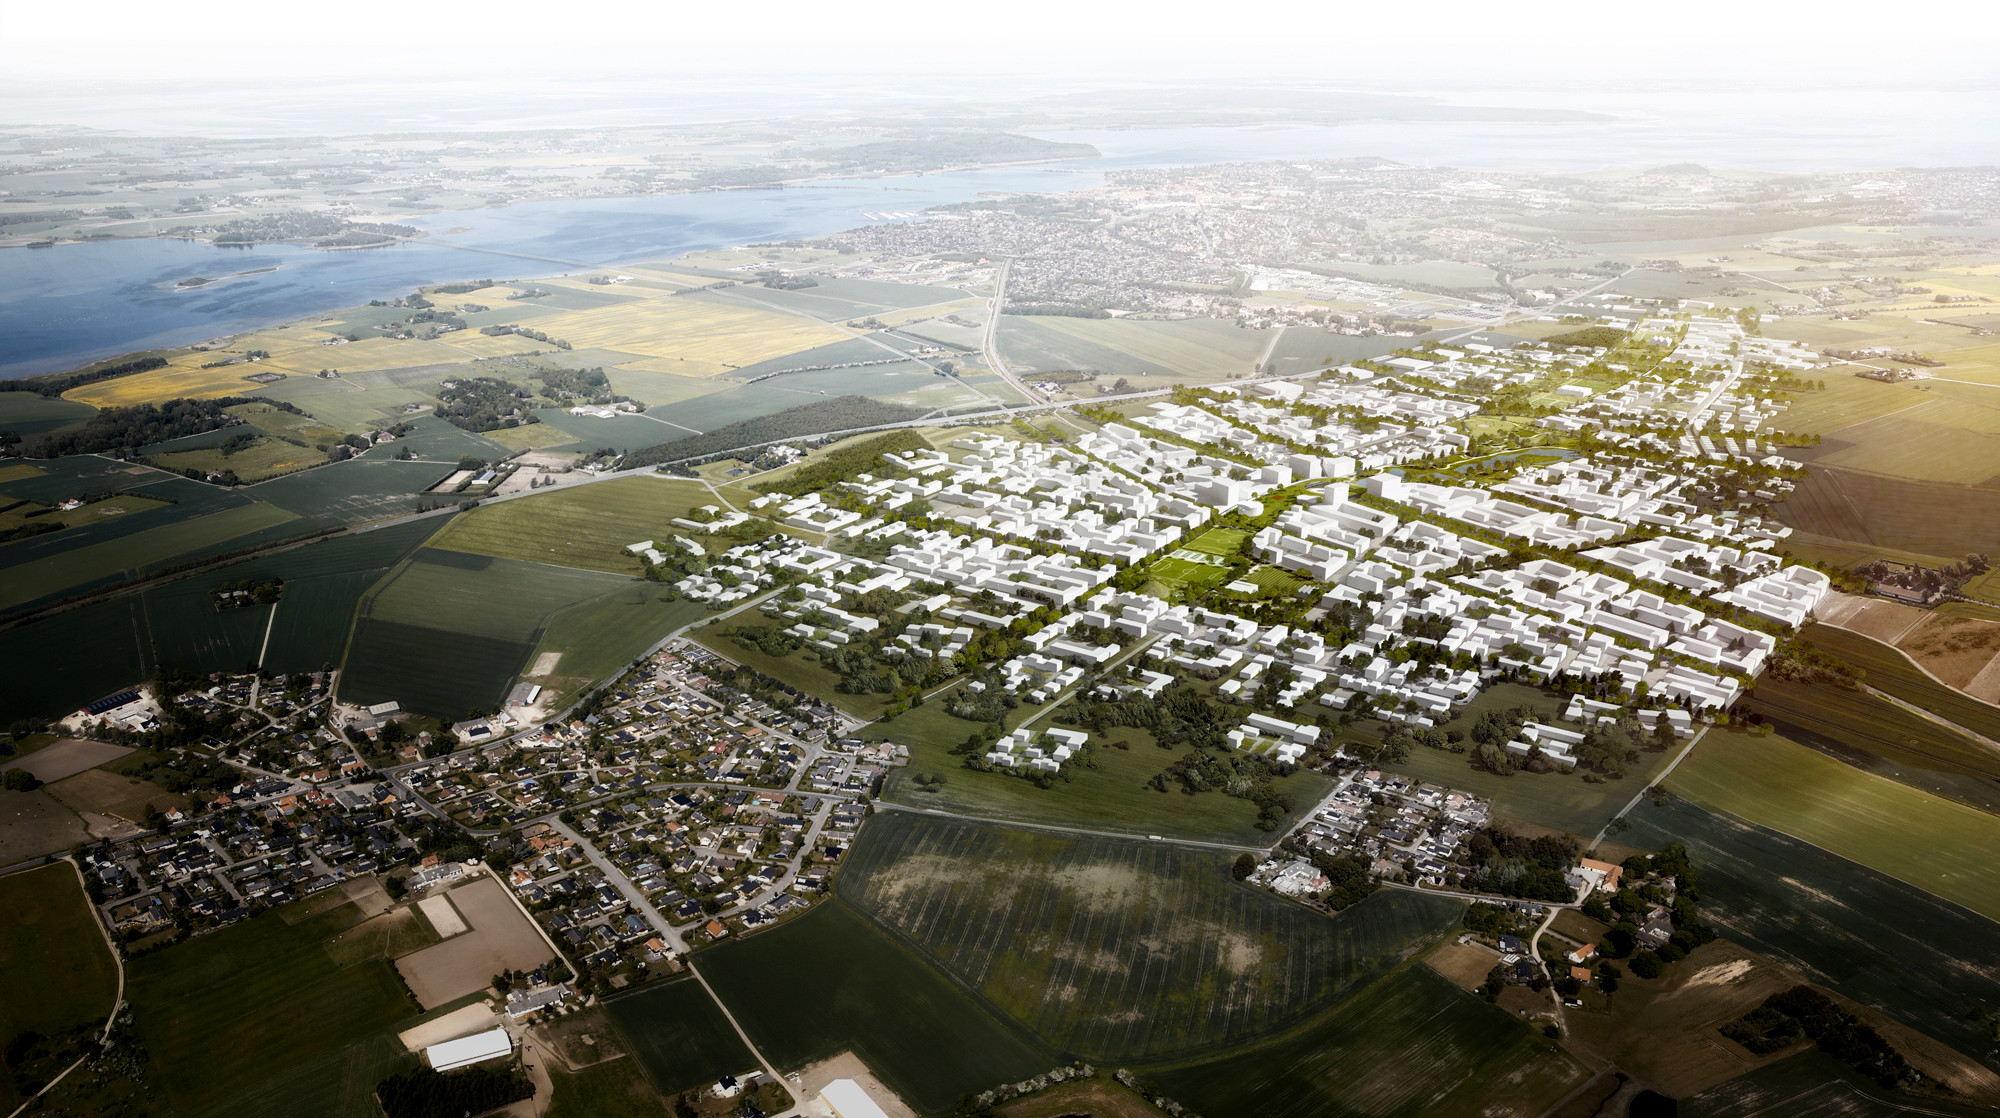 Vinge Masterplan Proposal / EFFEKT + Henning Larsen Architects, Courtesy of EFFEKT + Henning Larsen Architects